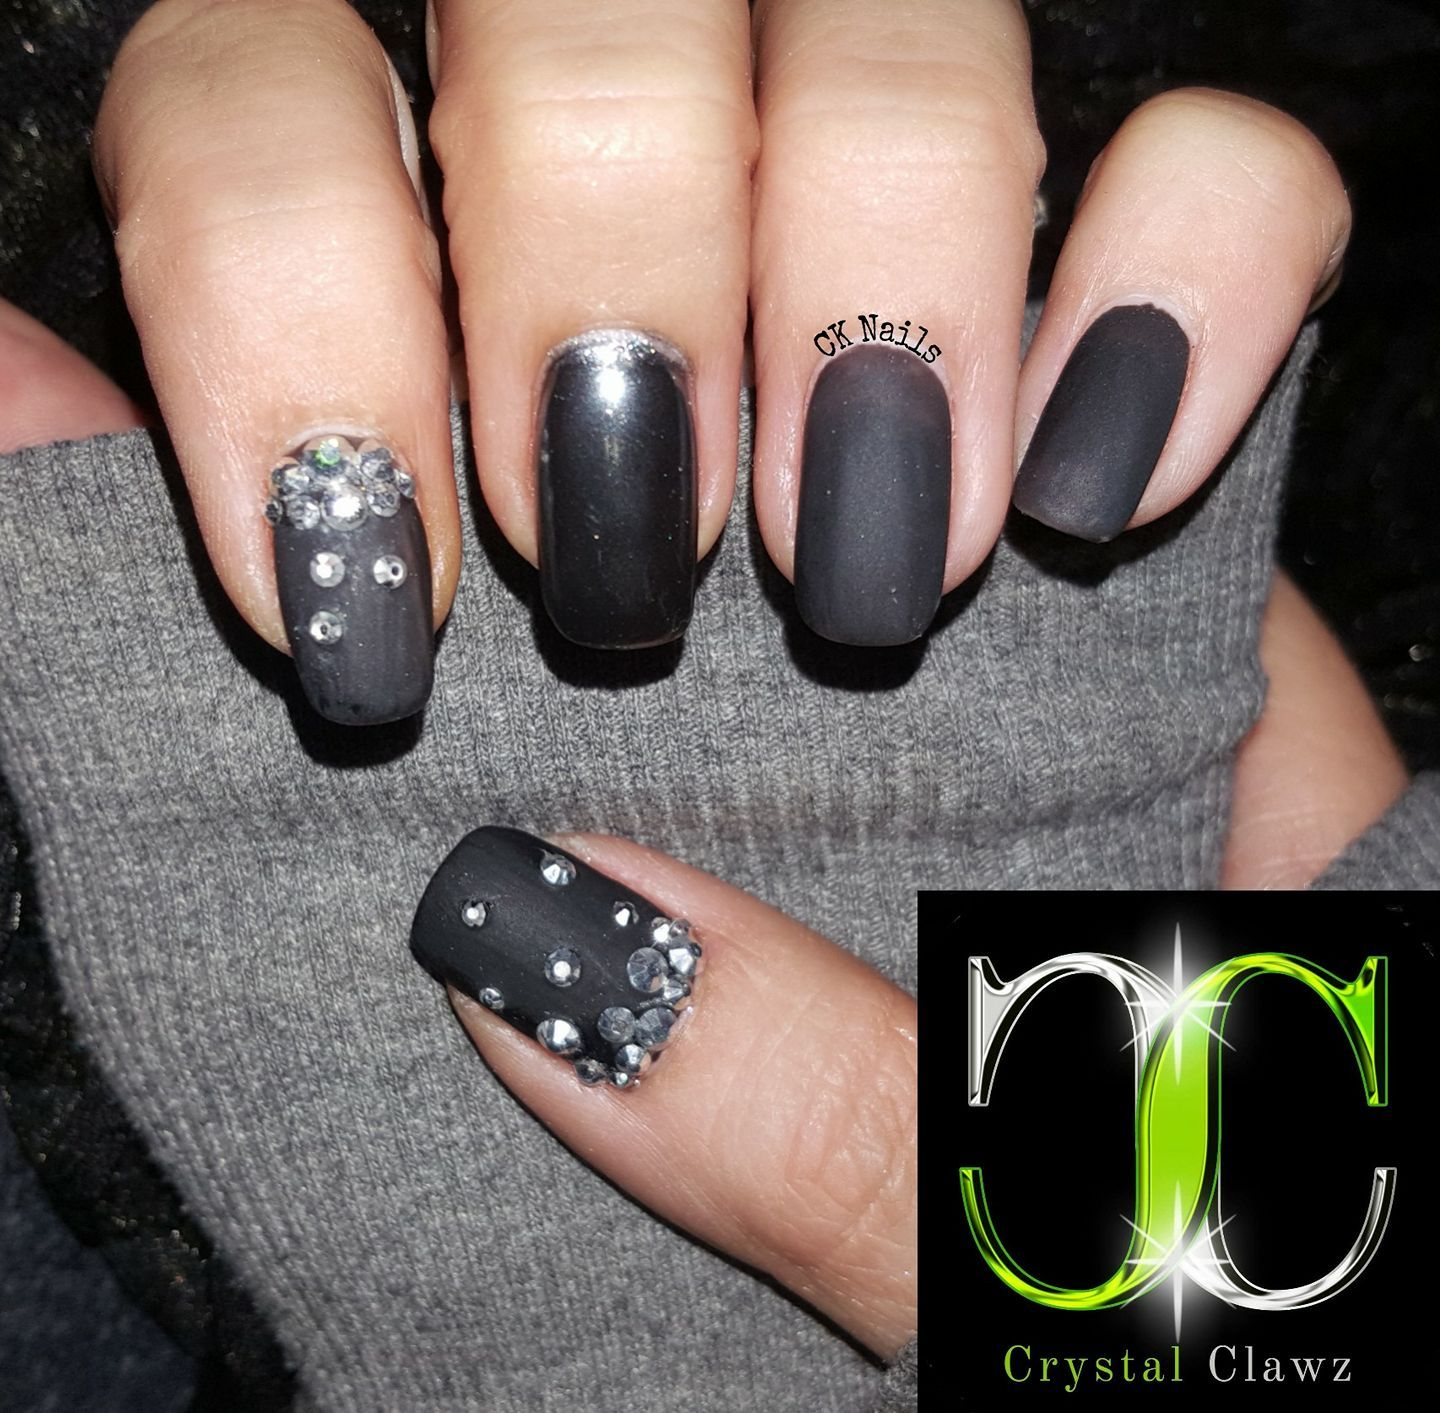 Black With Our Luxurious Rubber Matte Top Coat Finished With A Gunmetal Chrome Nails And Labrador Crystals Cryst Nail Art Supplies Nail Decorations Nail Art